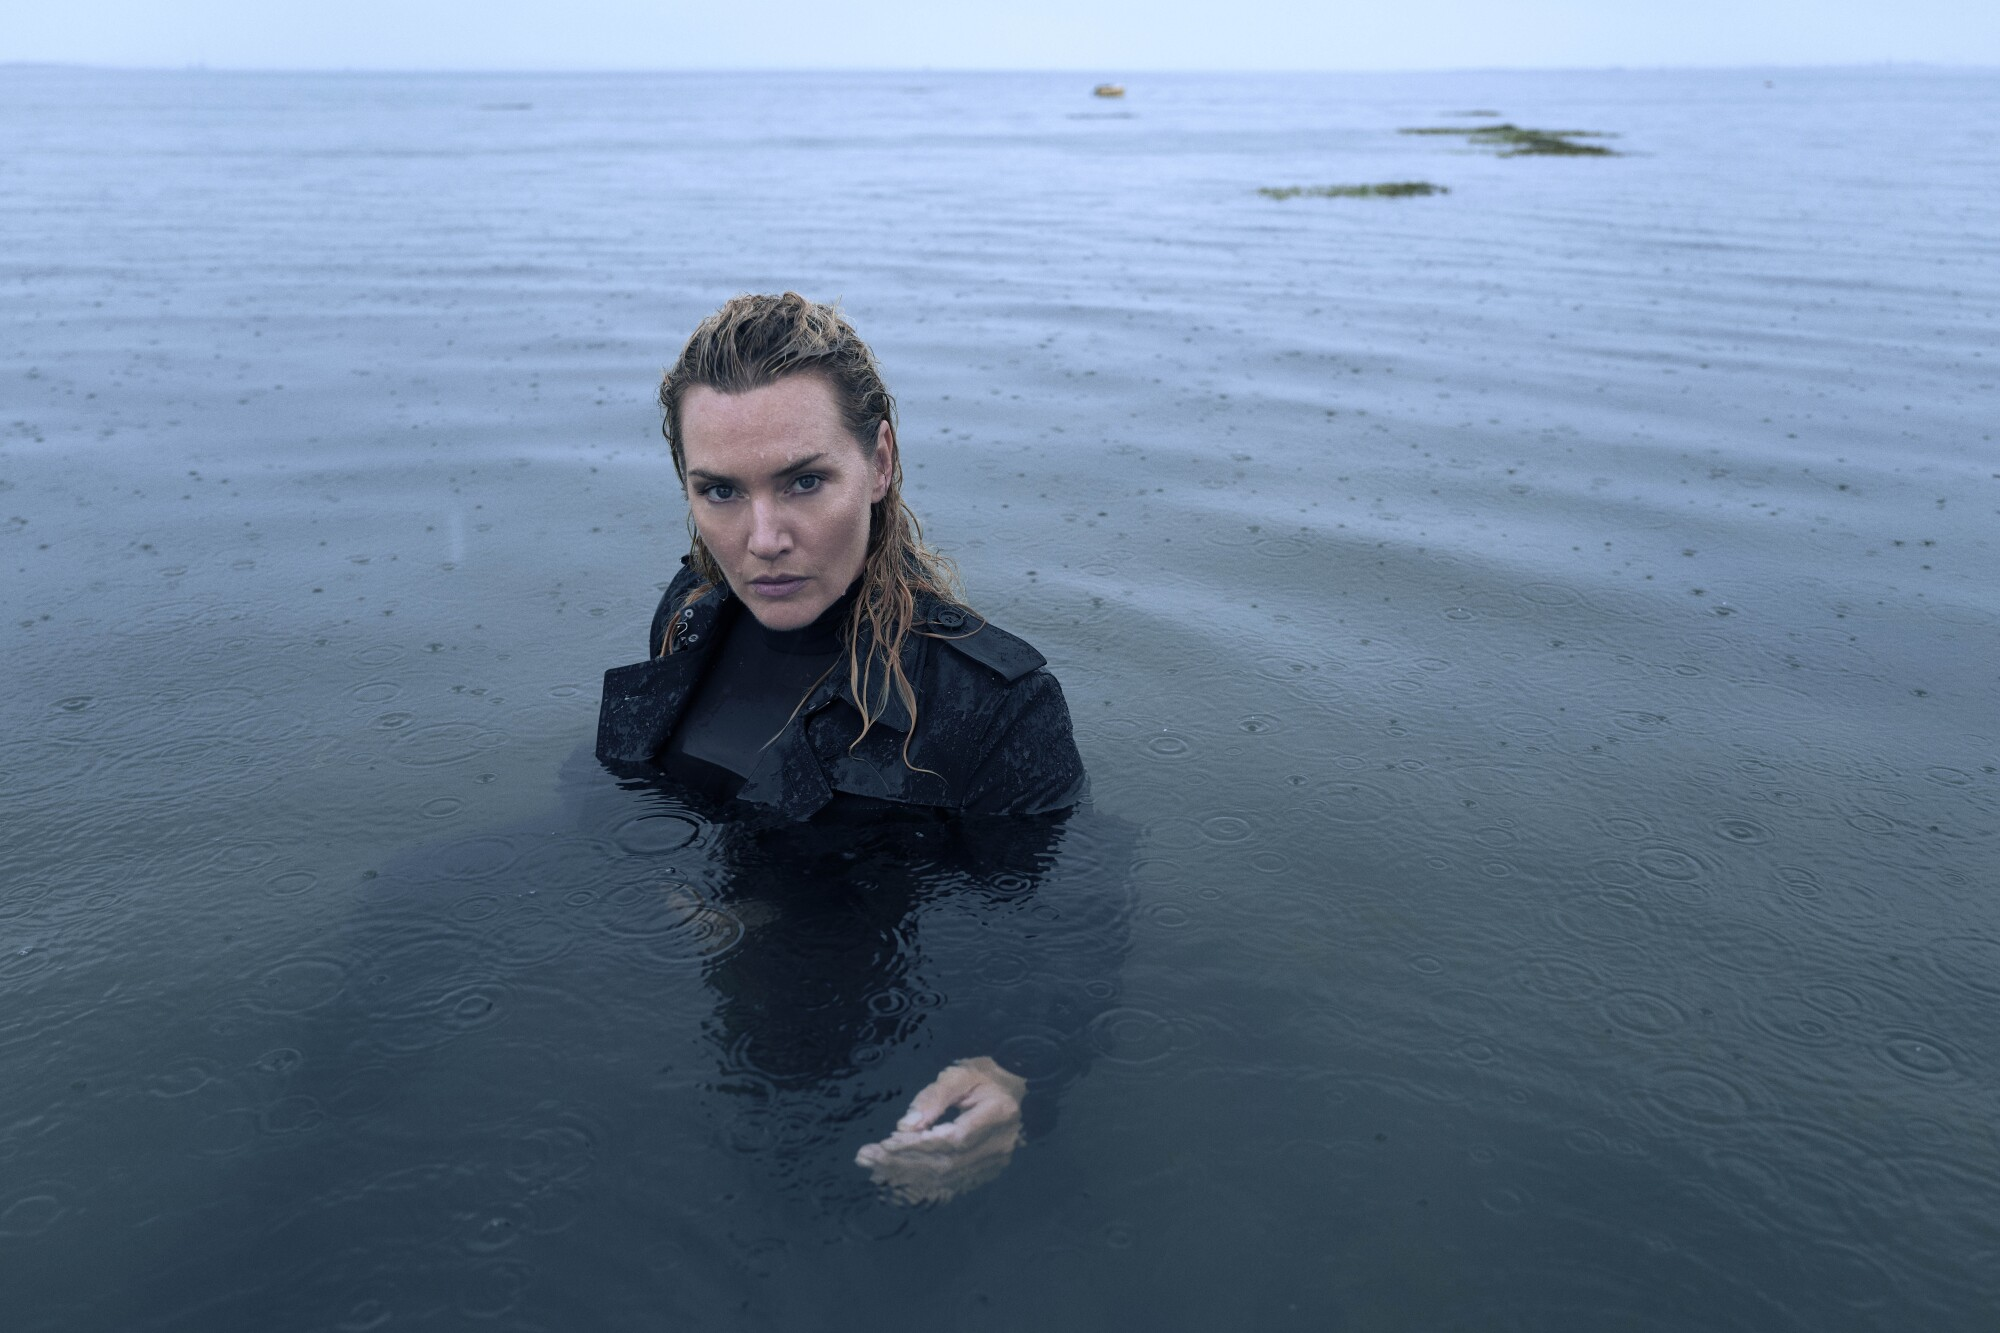 A fully dressed Kate Winslet immerses herself in a body of water in the rain.